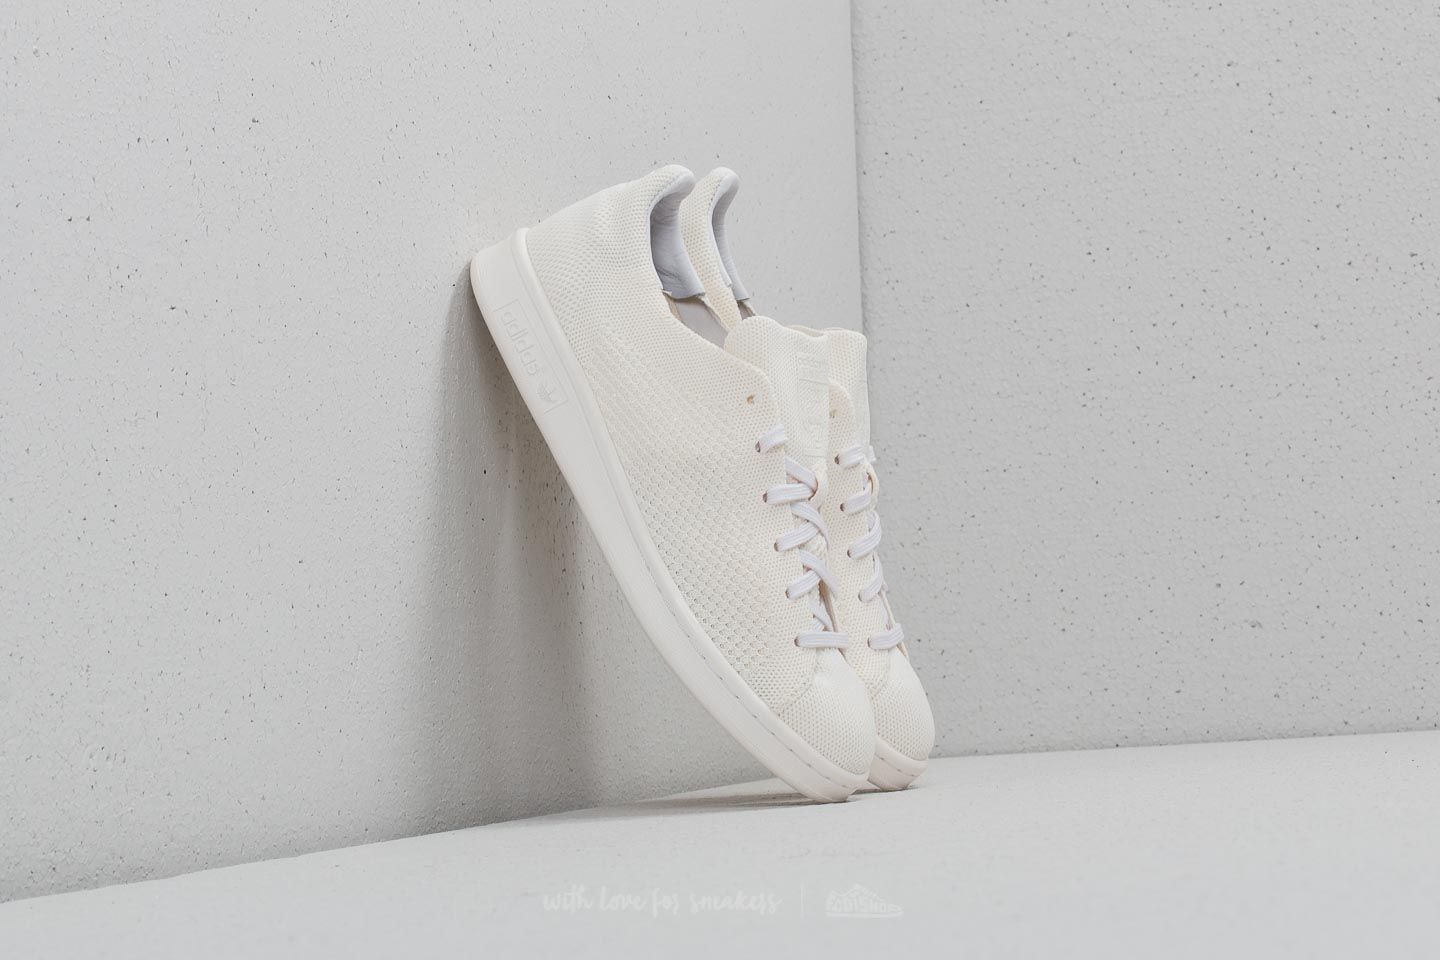 d3baab807 adidas x Pharrell Williams Human Race HOLI Stan Smith BC Cream White  Ftw  White